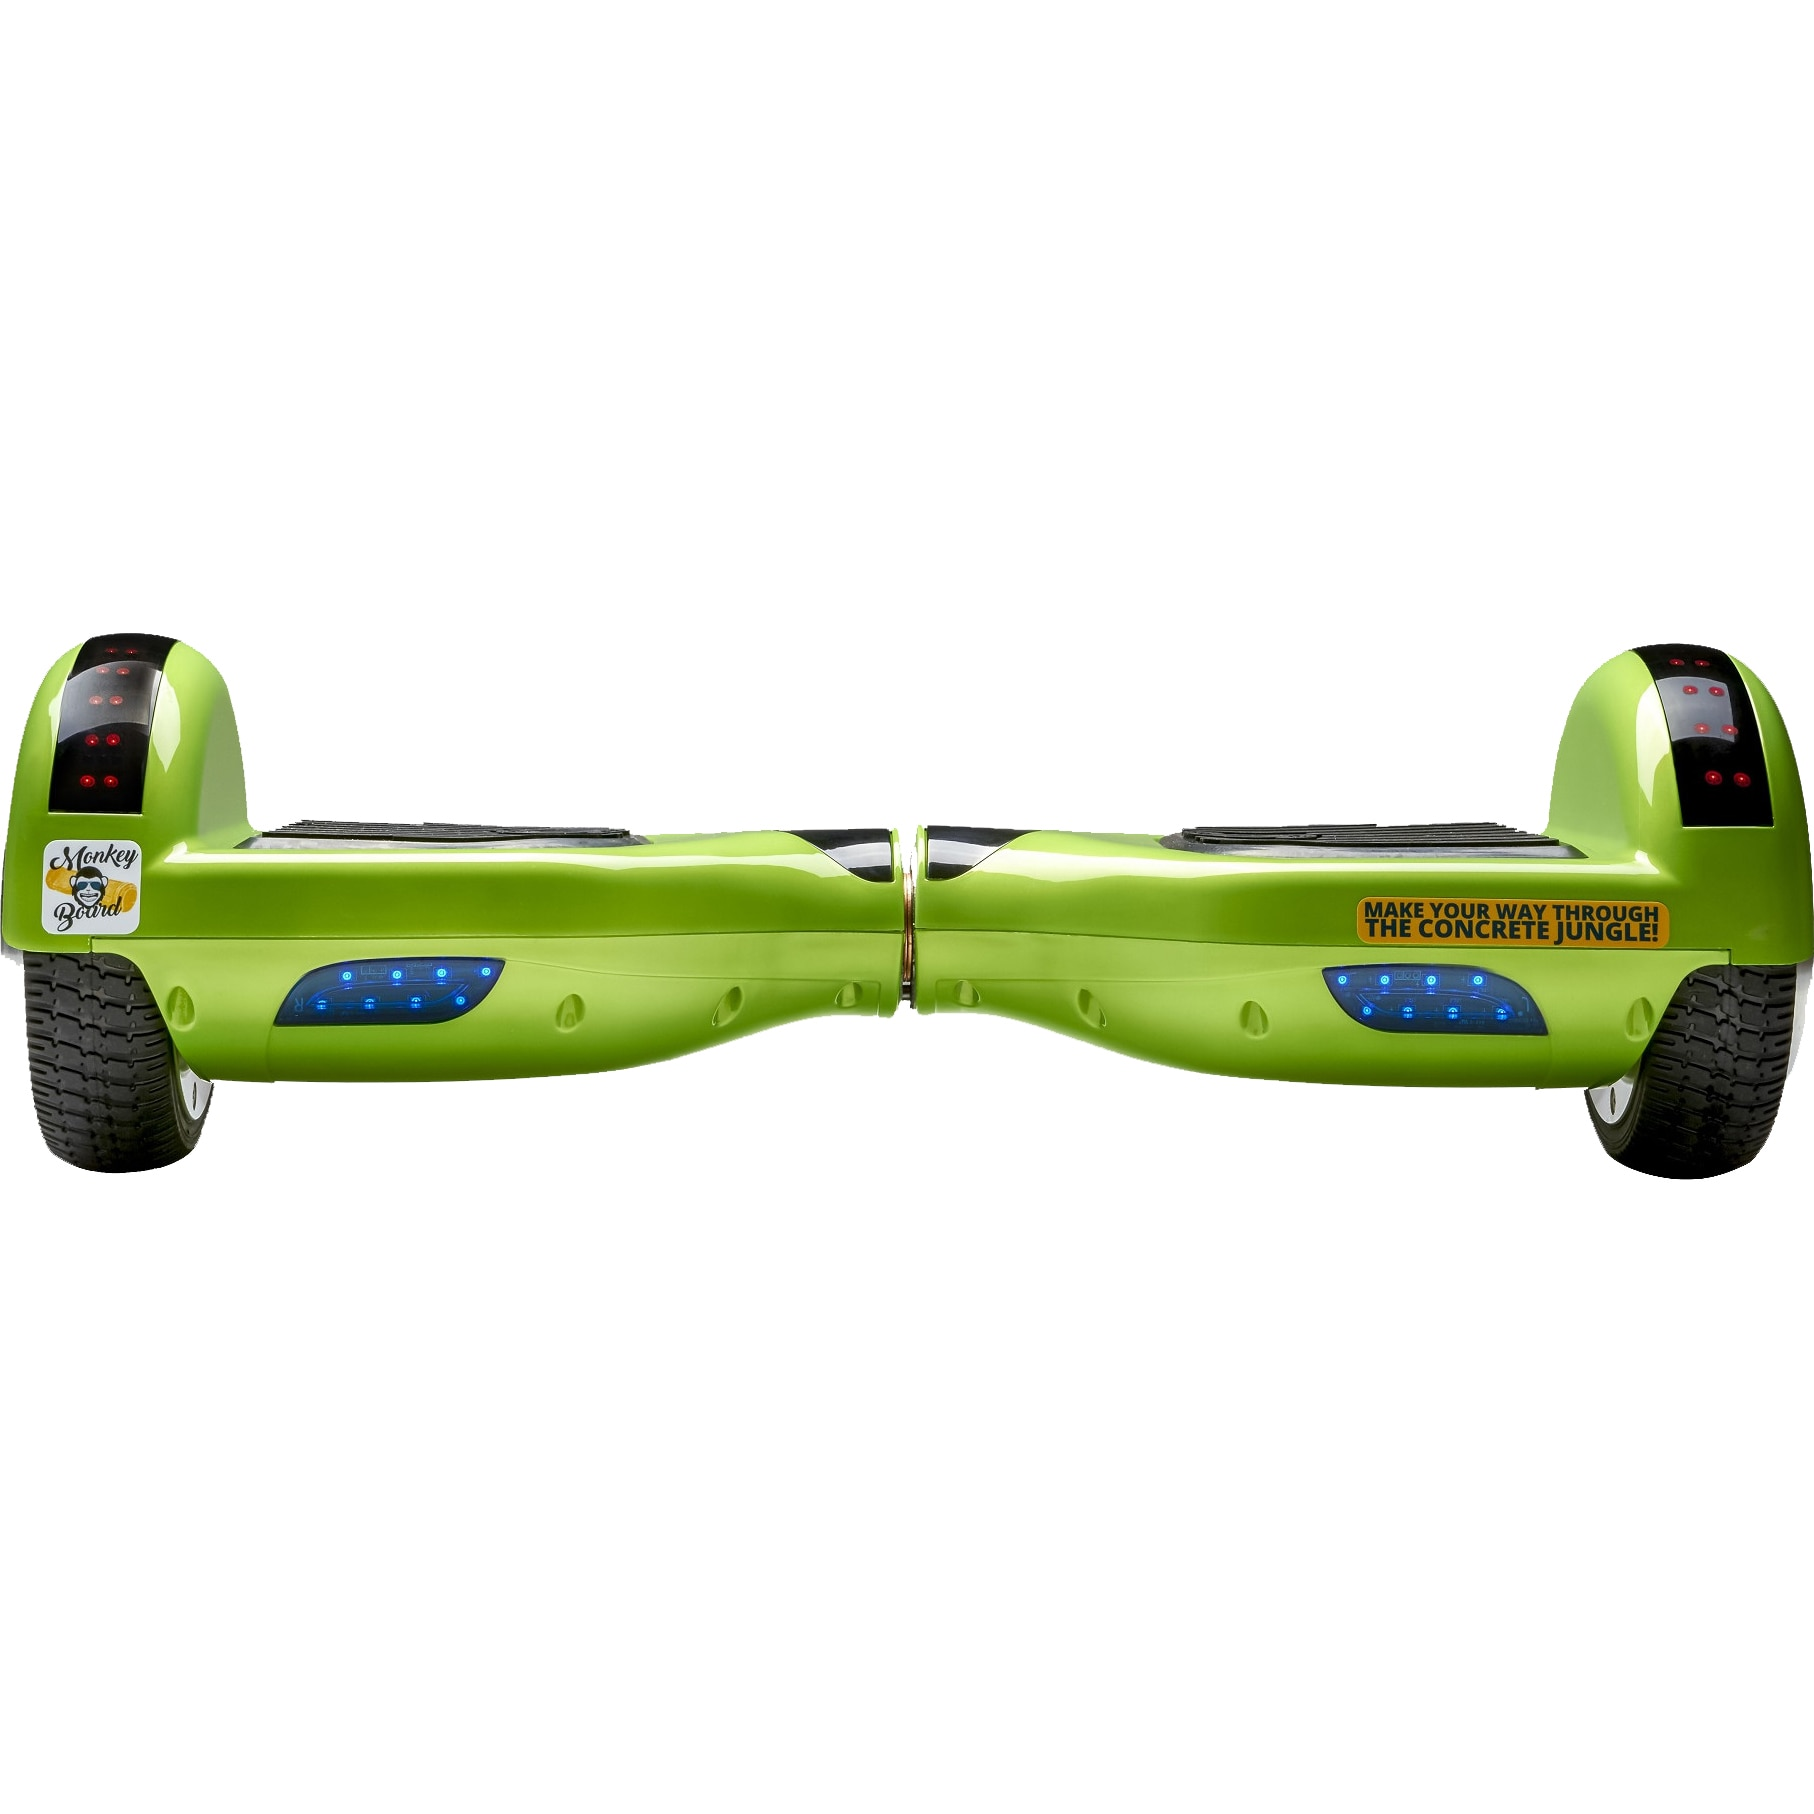 Fotografie Hoverboard Original MonkeyBoard® Action Green ,Scuter electric,roti 6.5 inch,bluetooth,geanta de transport cadou,led-uri,lumini de zi/noapte,boxa incorporata,1000W,